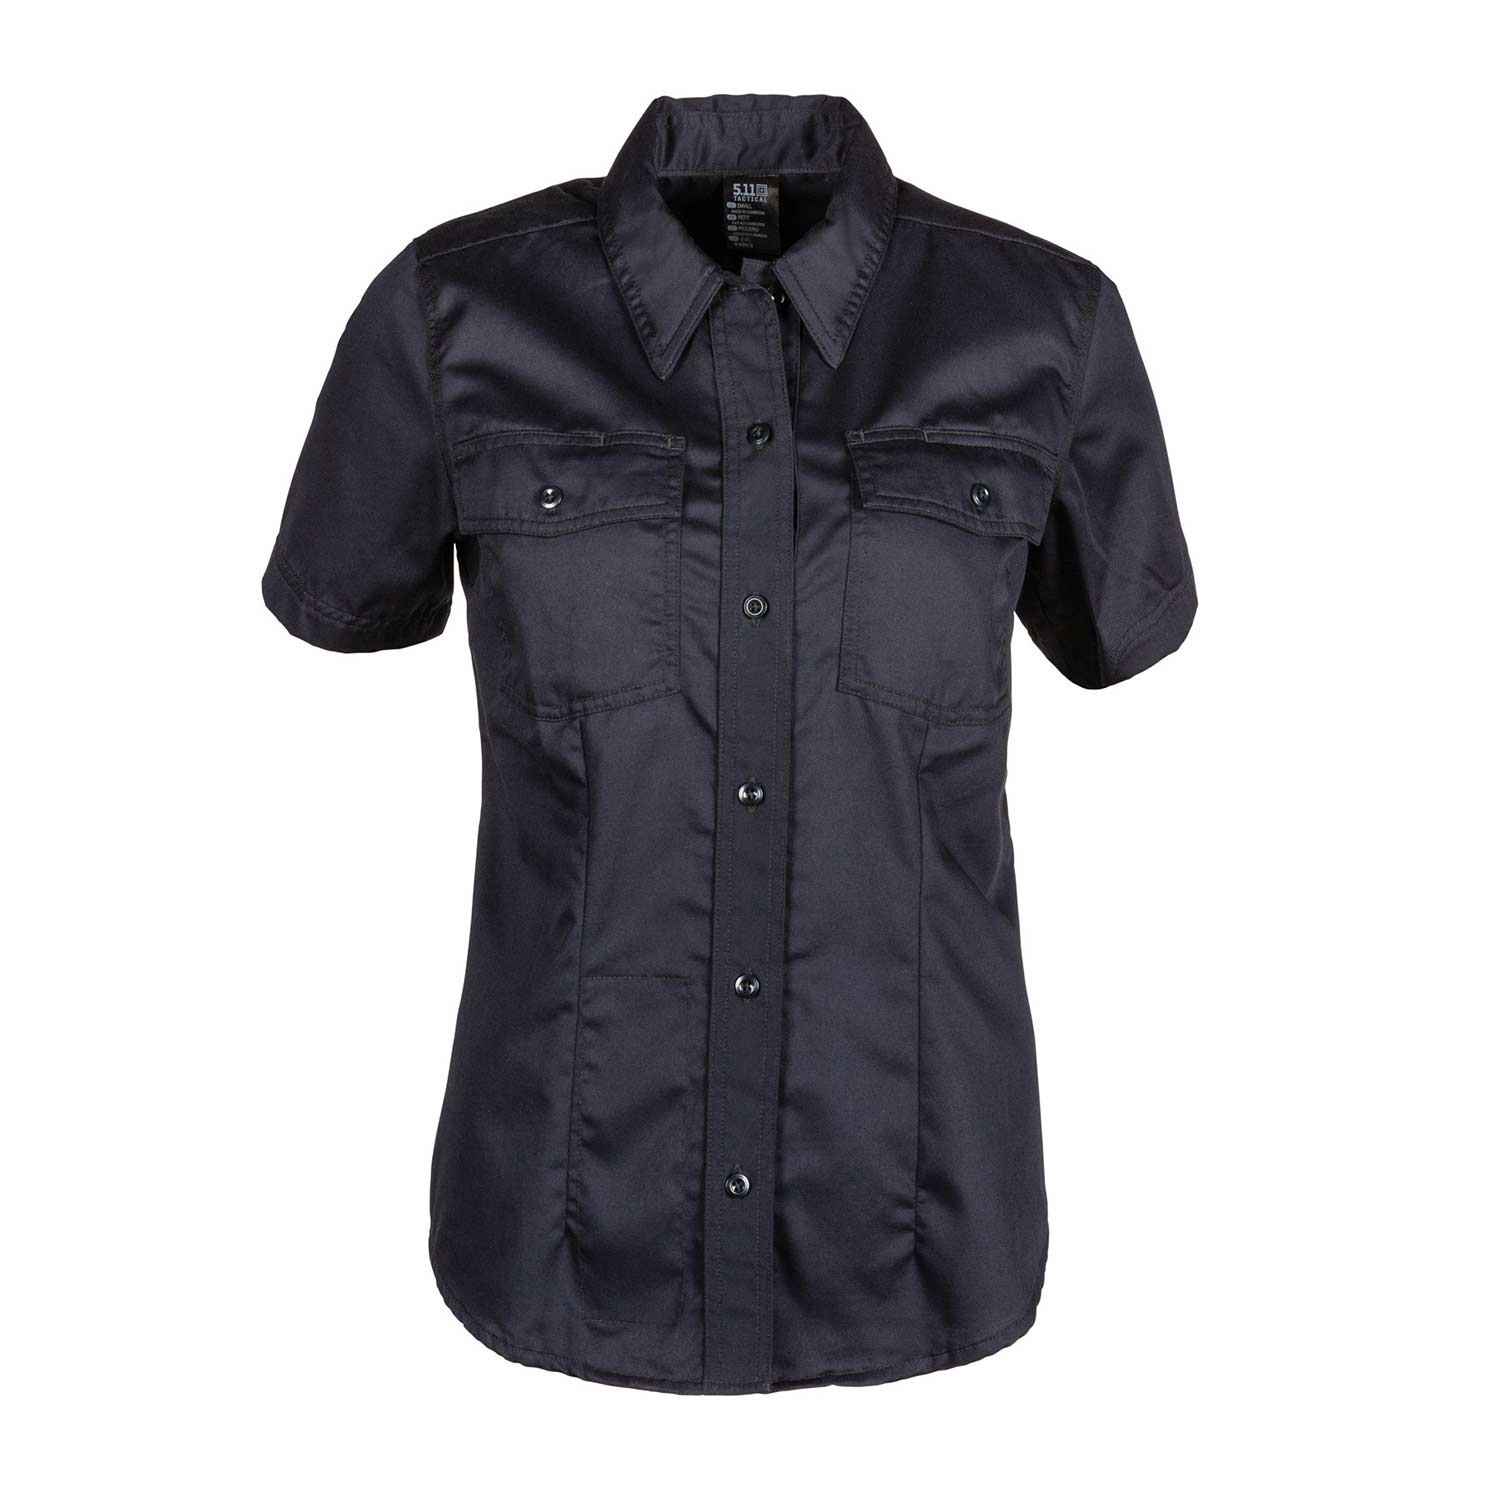 5.11 Tactical Womens Short Sleeve Company Shirt